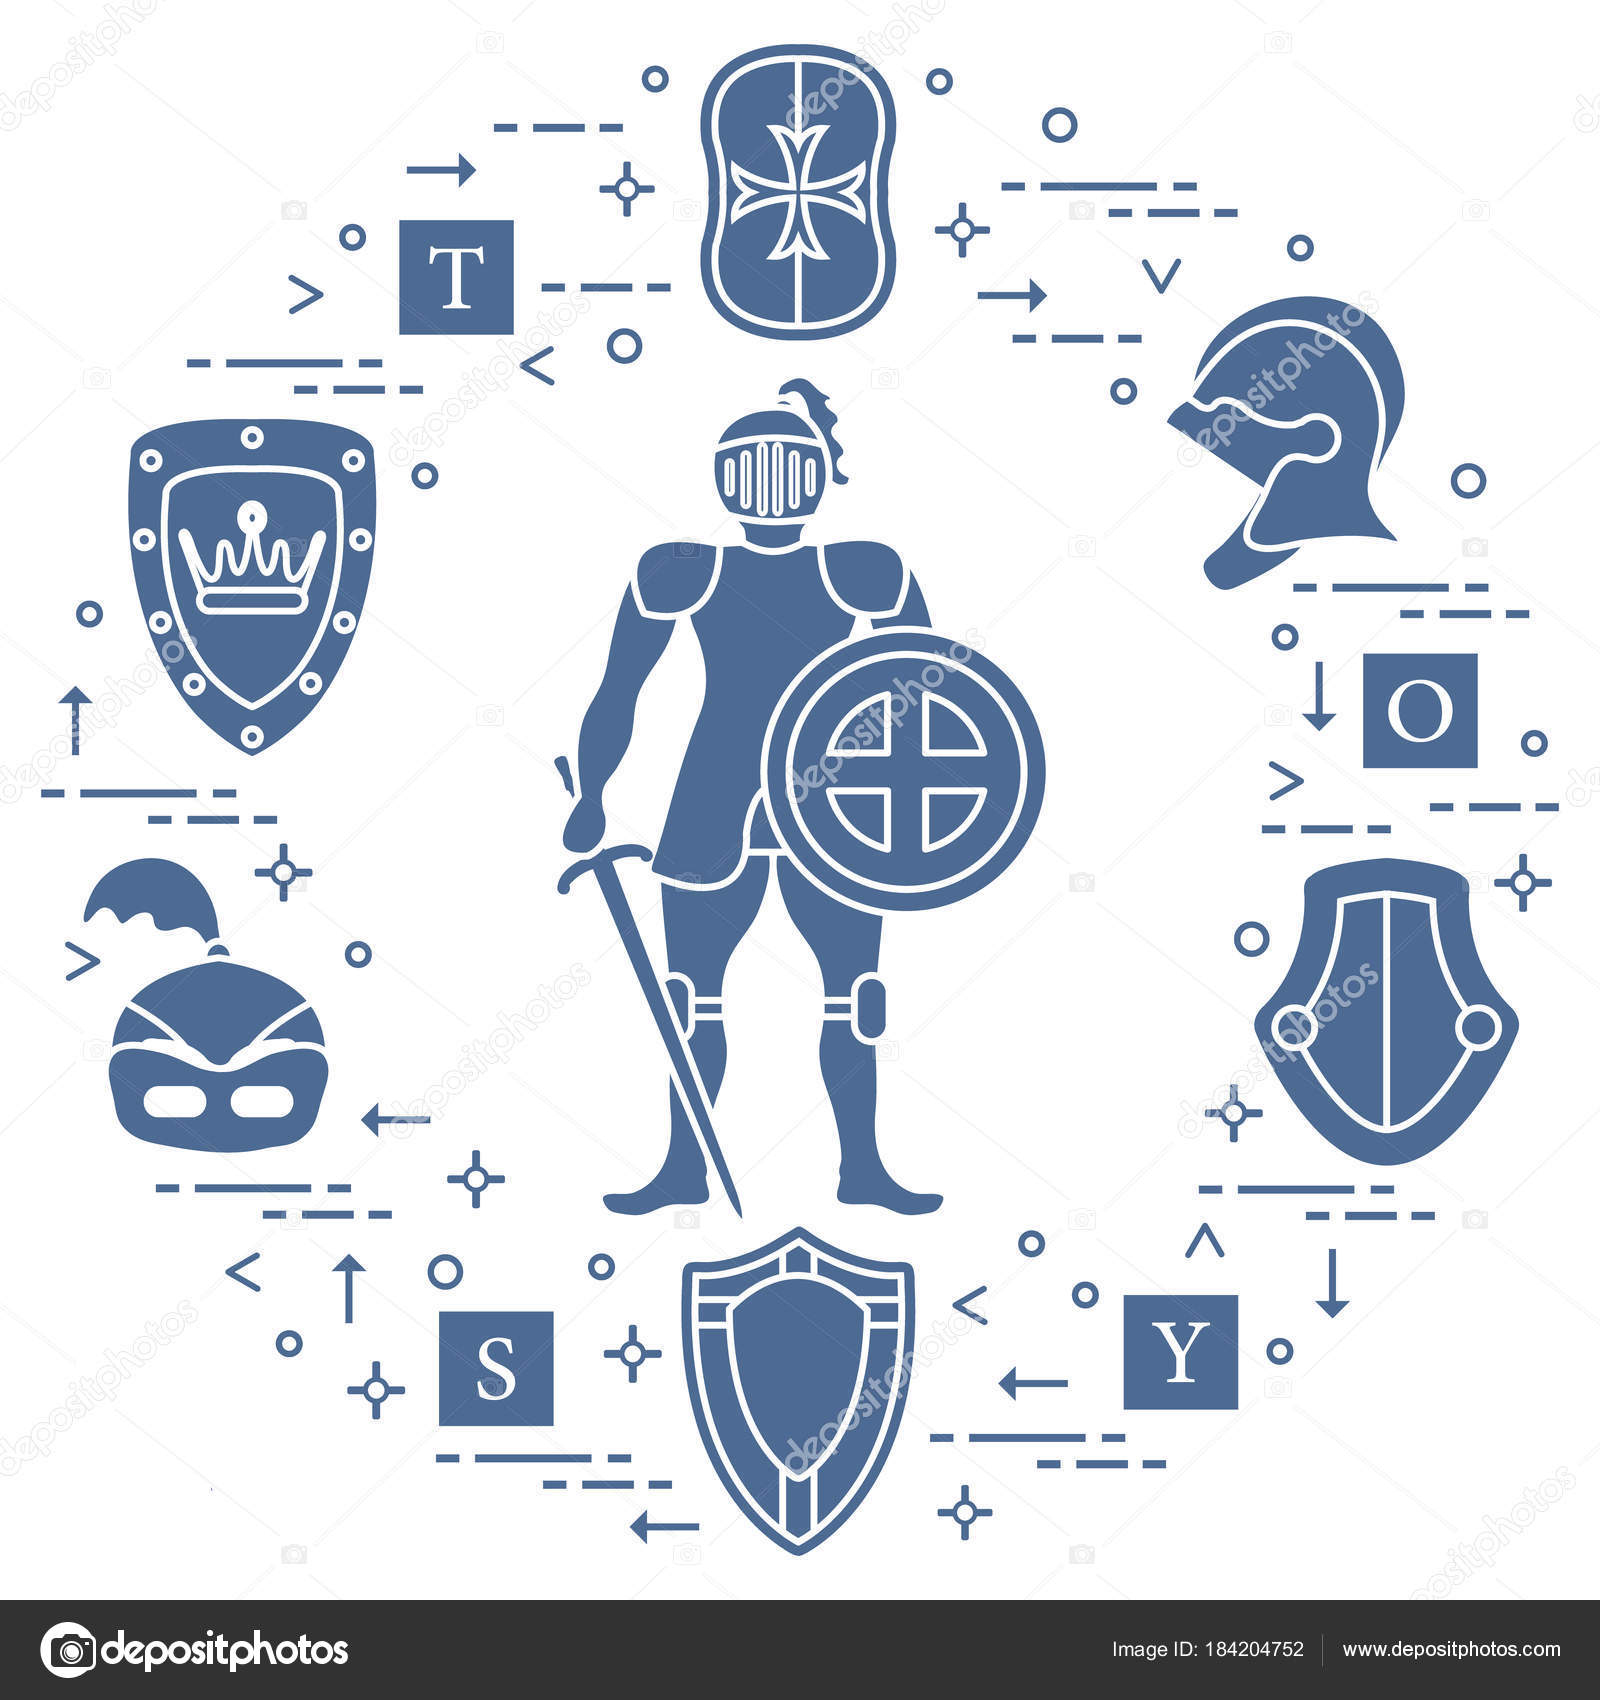 Knight, shields, swords, helmets, cubes. — Stock Vector © aquamarine ...